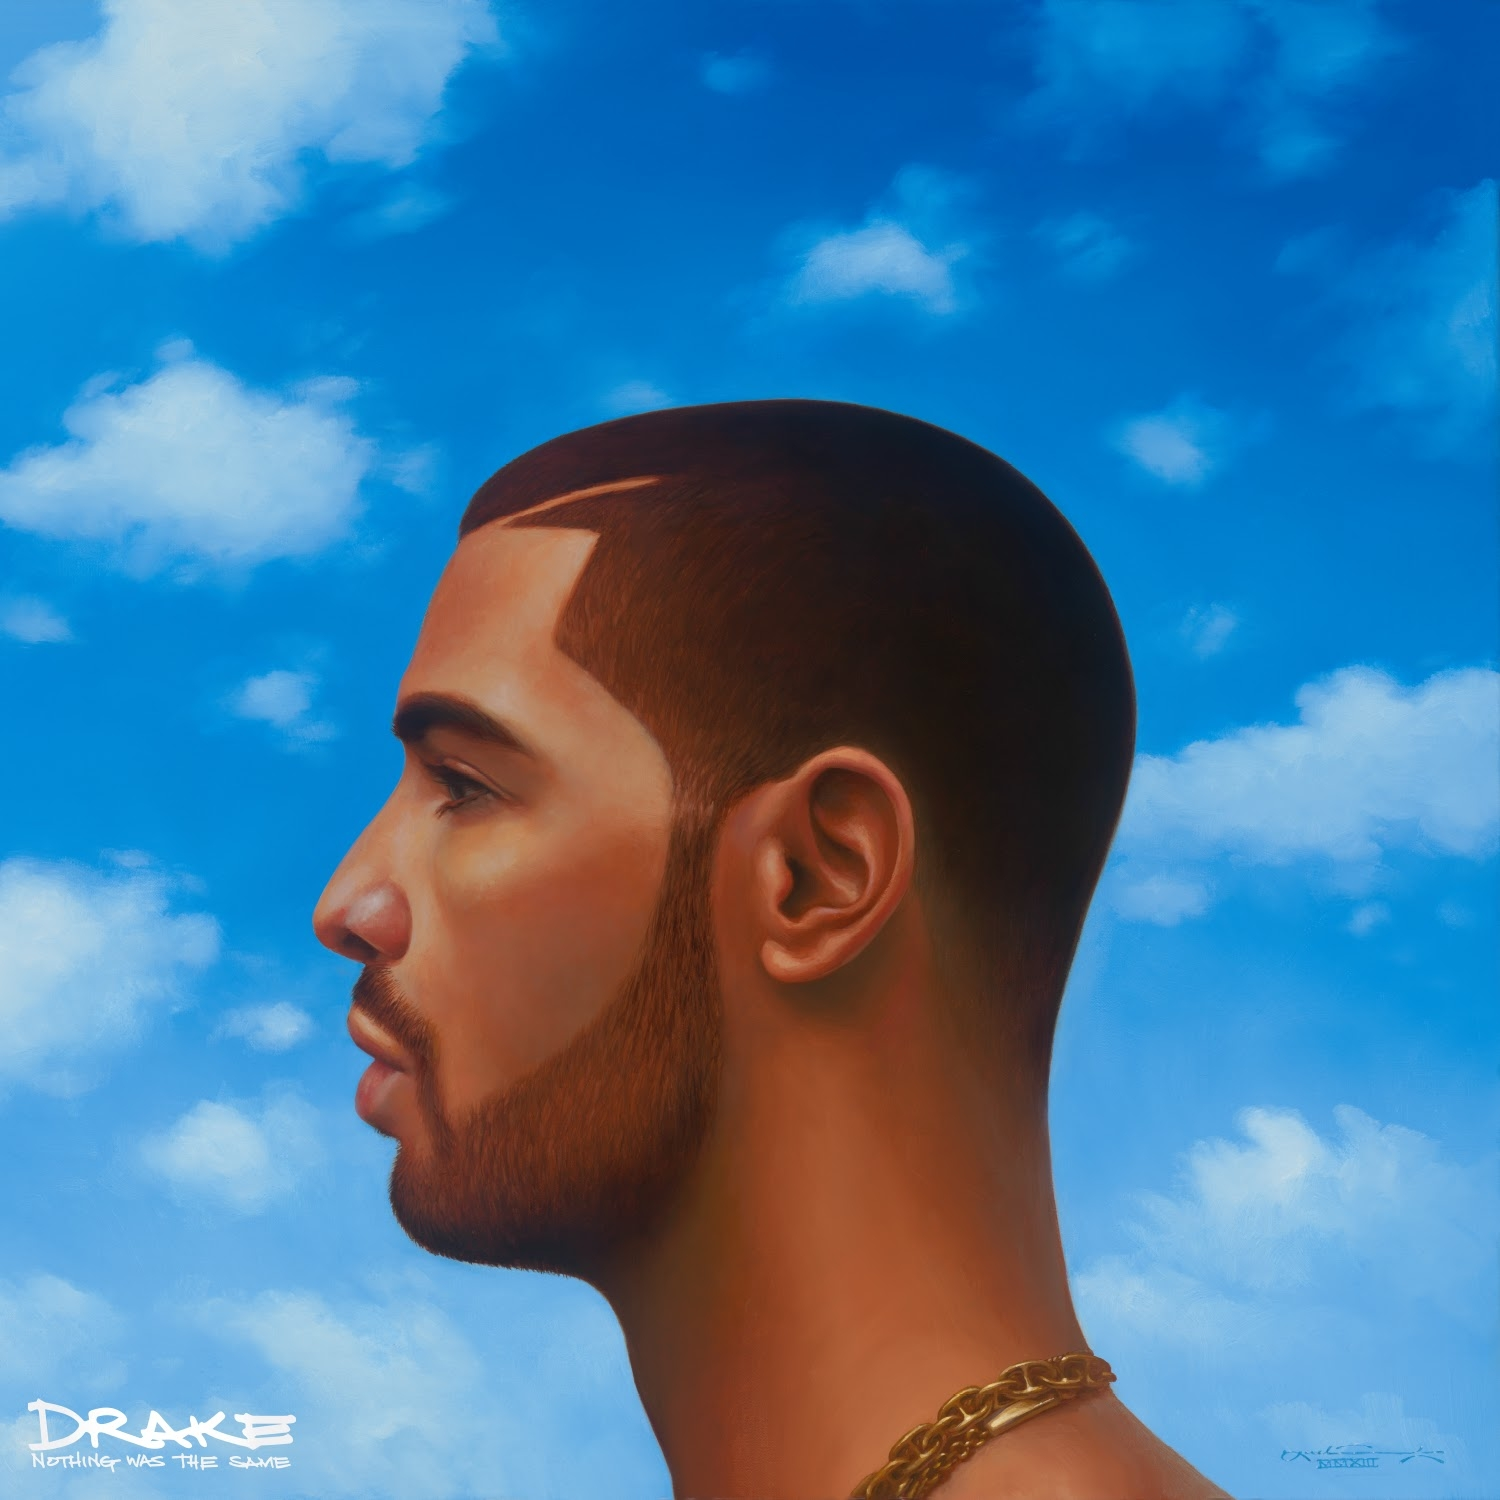 Drake - Nothing Was The Same(2013)_mp3bst.com